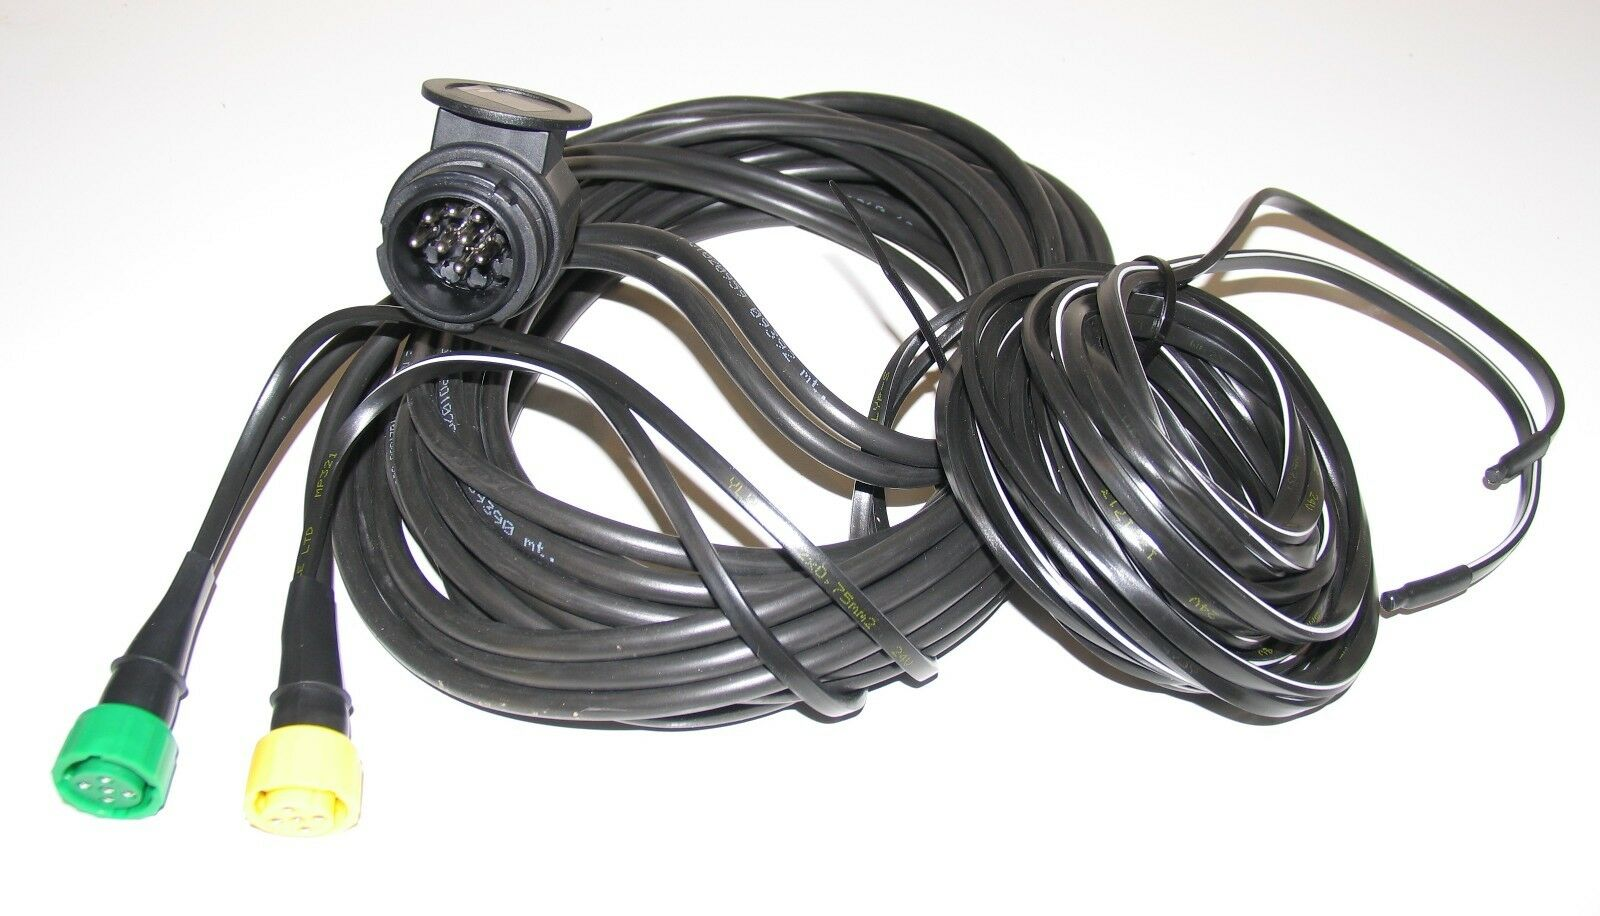 13 Pin Aspock Light Trailer Wiring Harness Loom 8mt Plug In Fitto Harnesses 1 Of See More